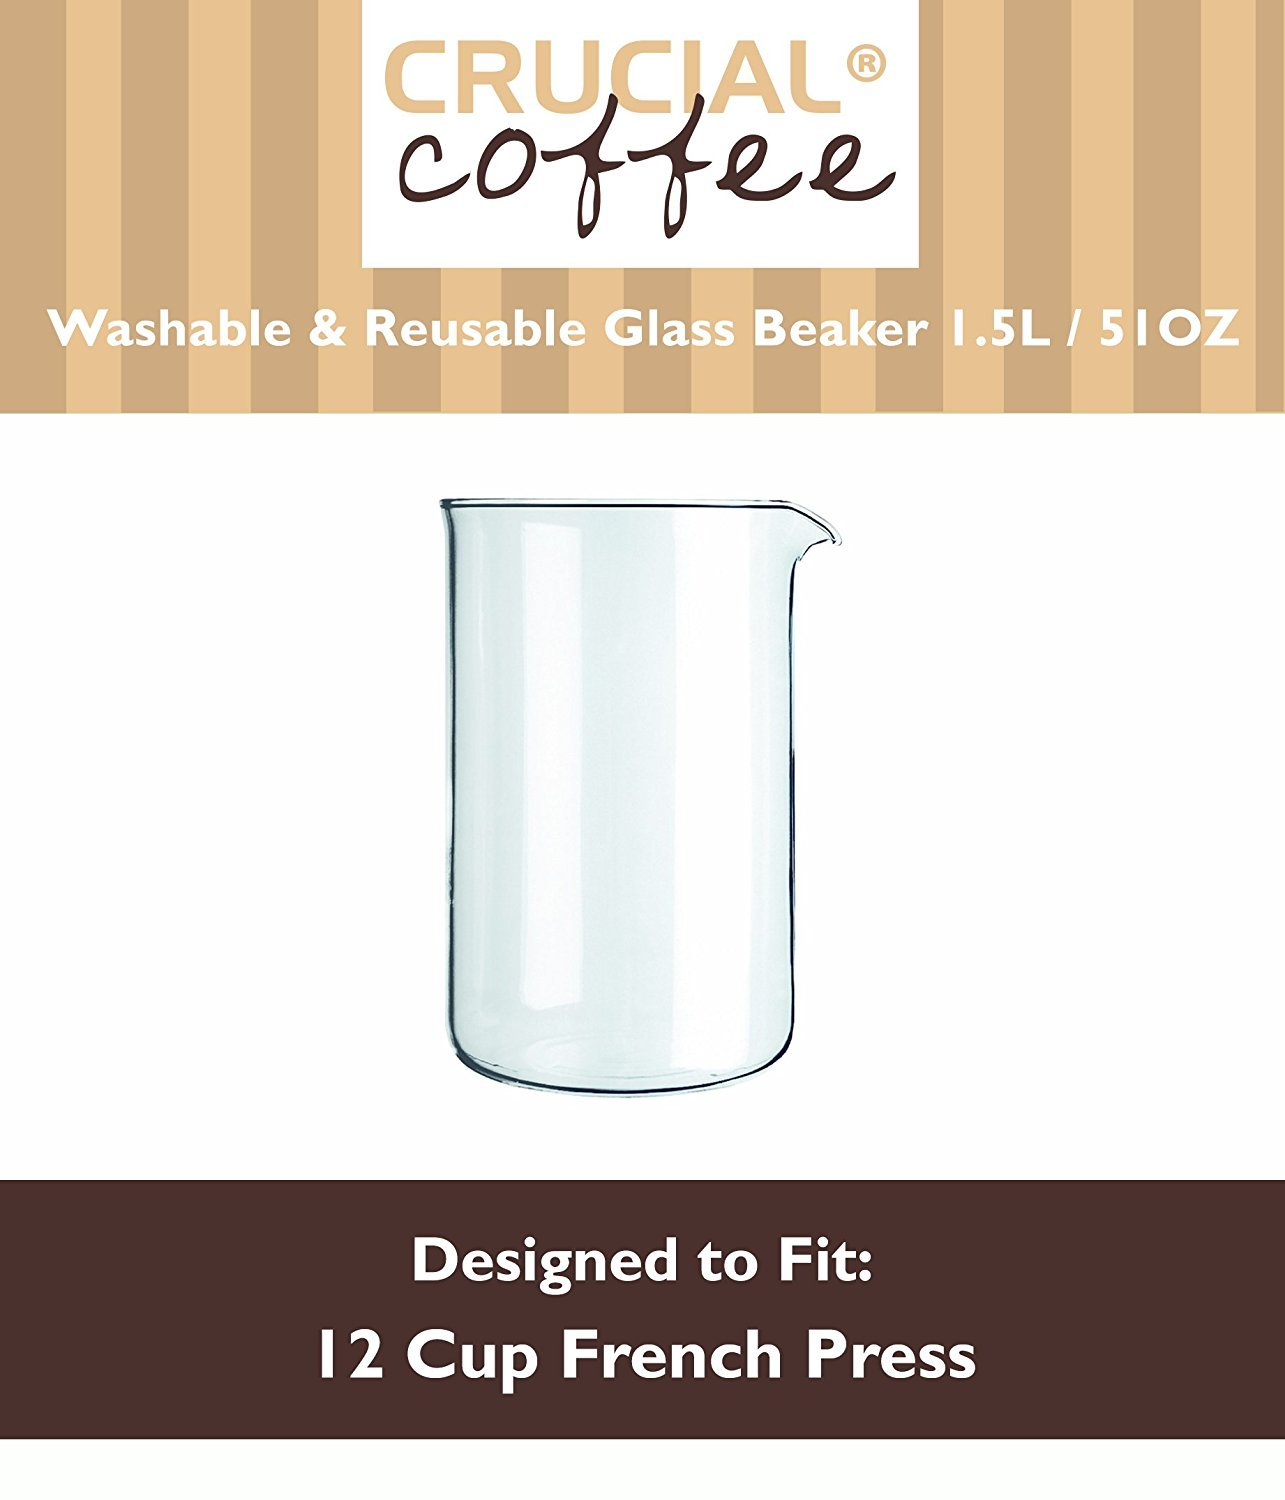 12 Cup (51 OZ) Universal Washable & Reusable Replacement French Press Glass Beaker Fits Bodum & 12 Cup French Presses, Designed & Engineered by Crucial Coffee